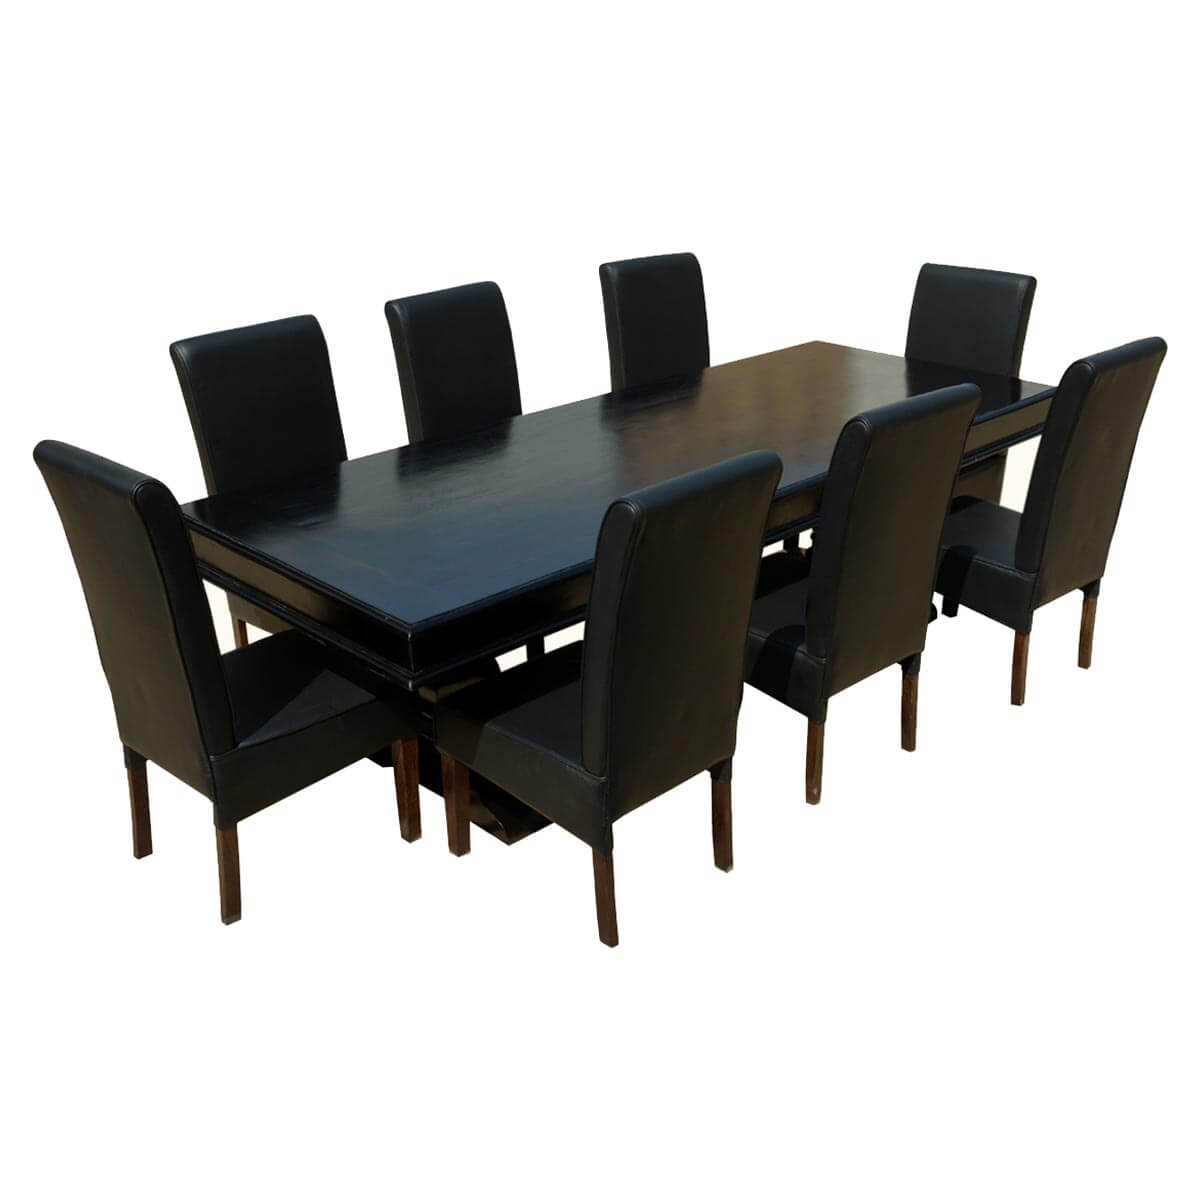 Dining Table 8 Chairs Executive Elegance Wood Leather 94